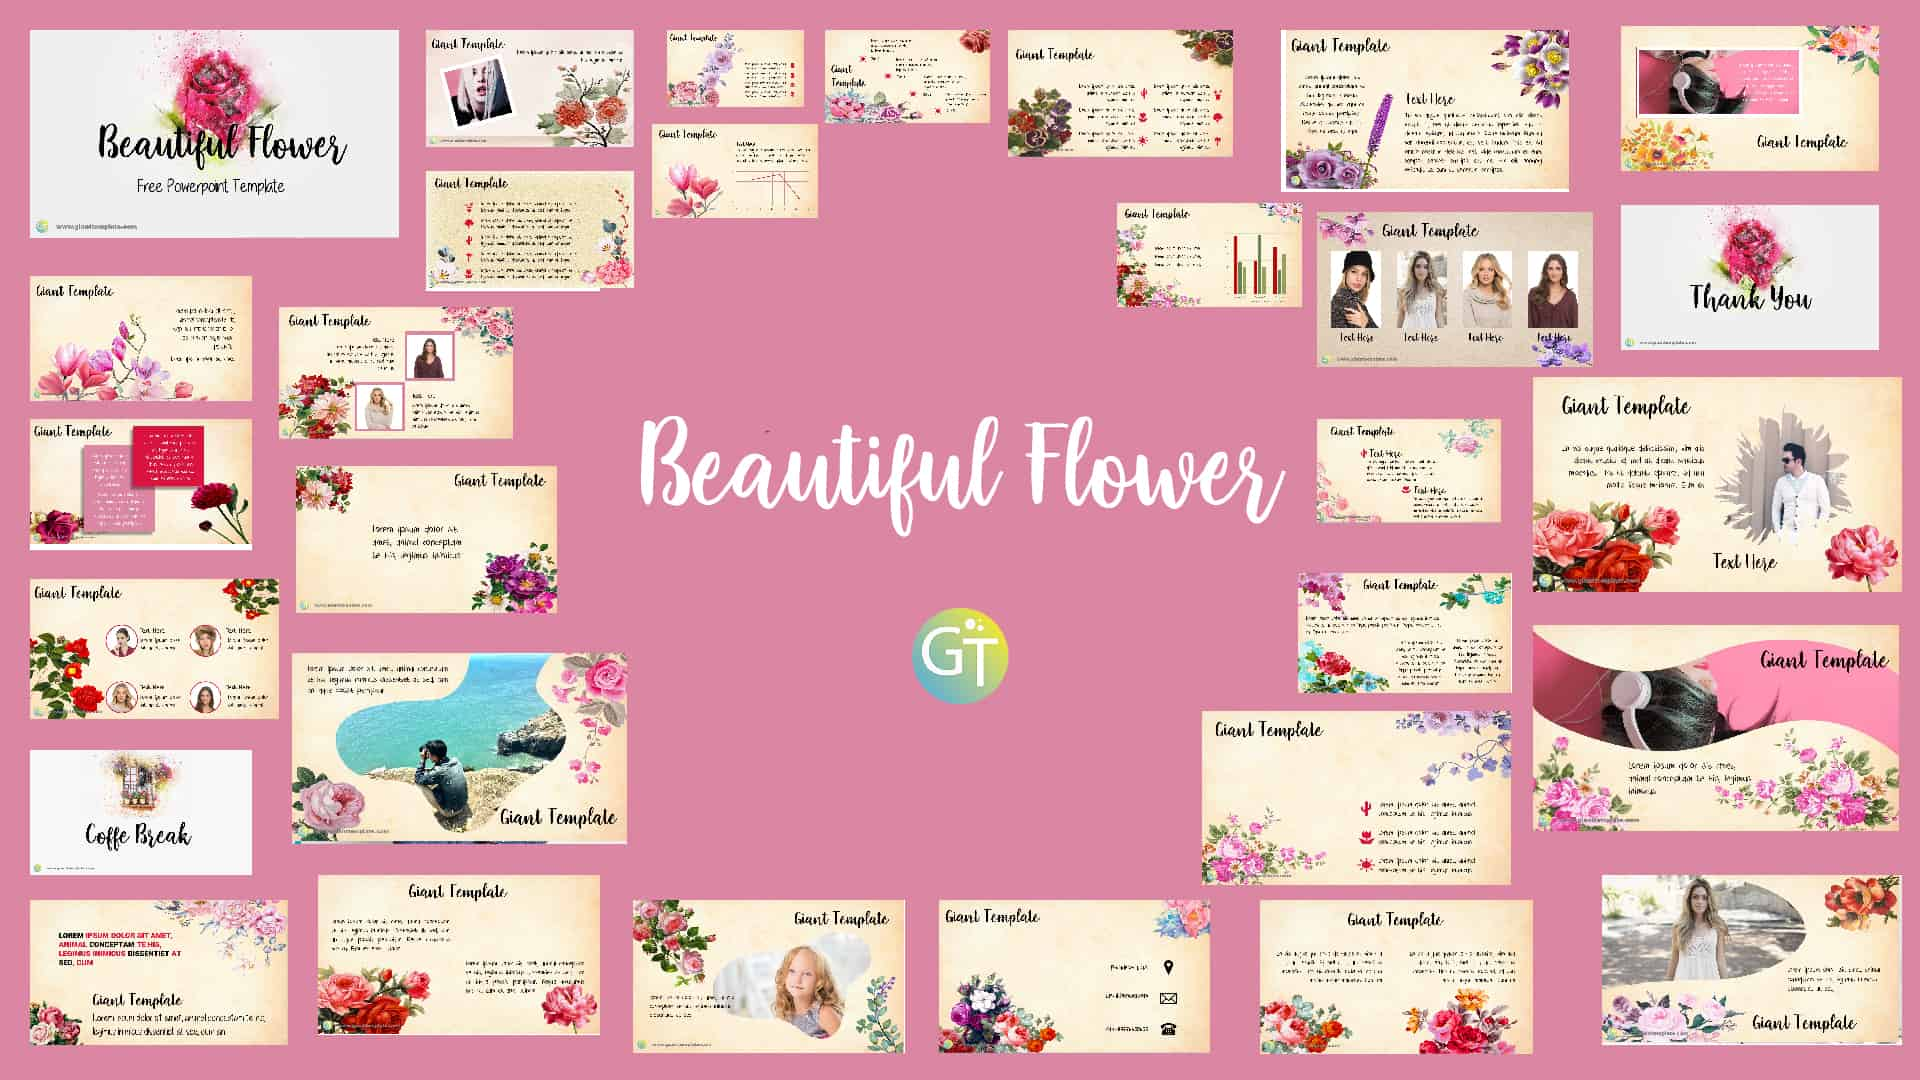 Beautiful Flower Free Powerpoint Template – 30 Slide